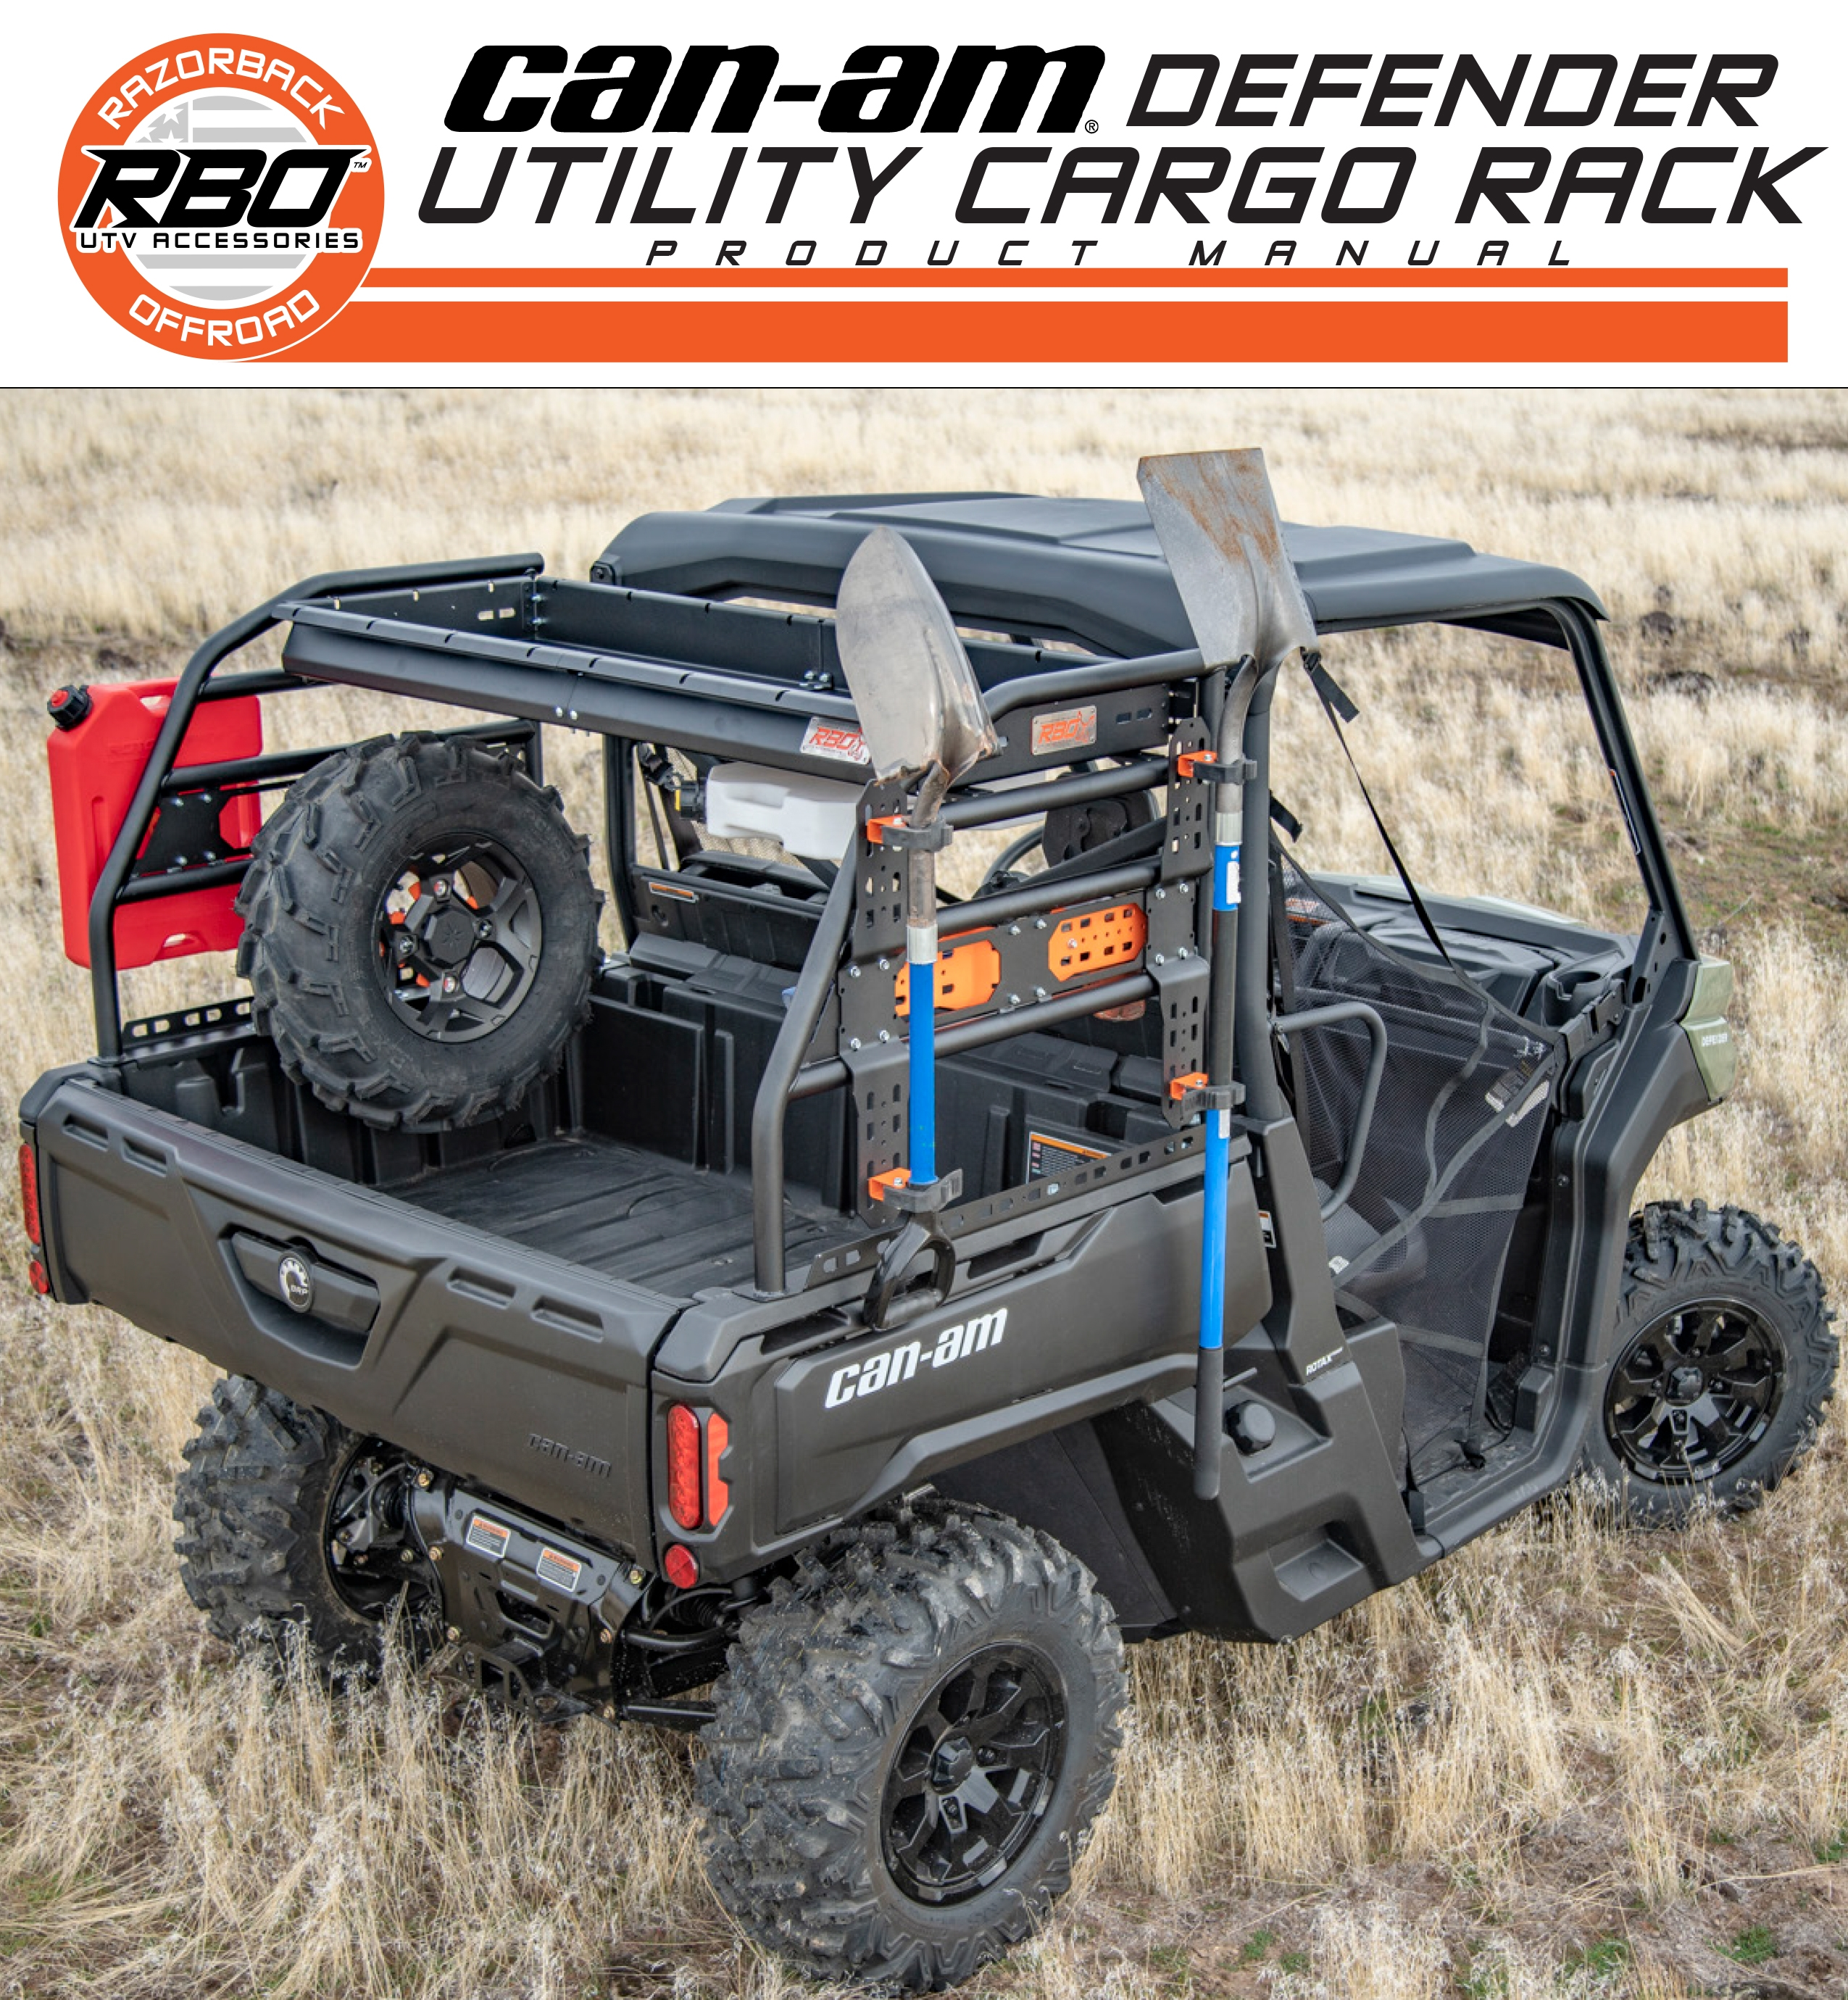 RBO Can-Am Defender Utility Cargo Rack Product Manual